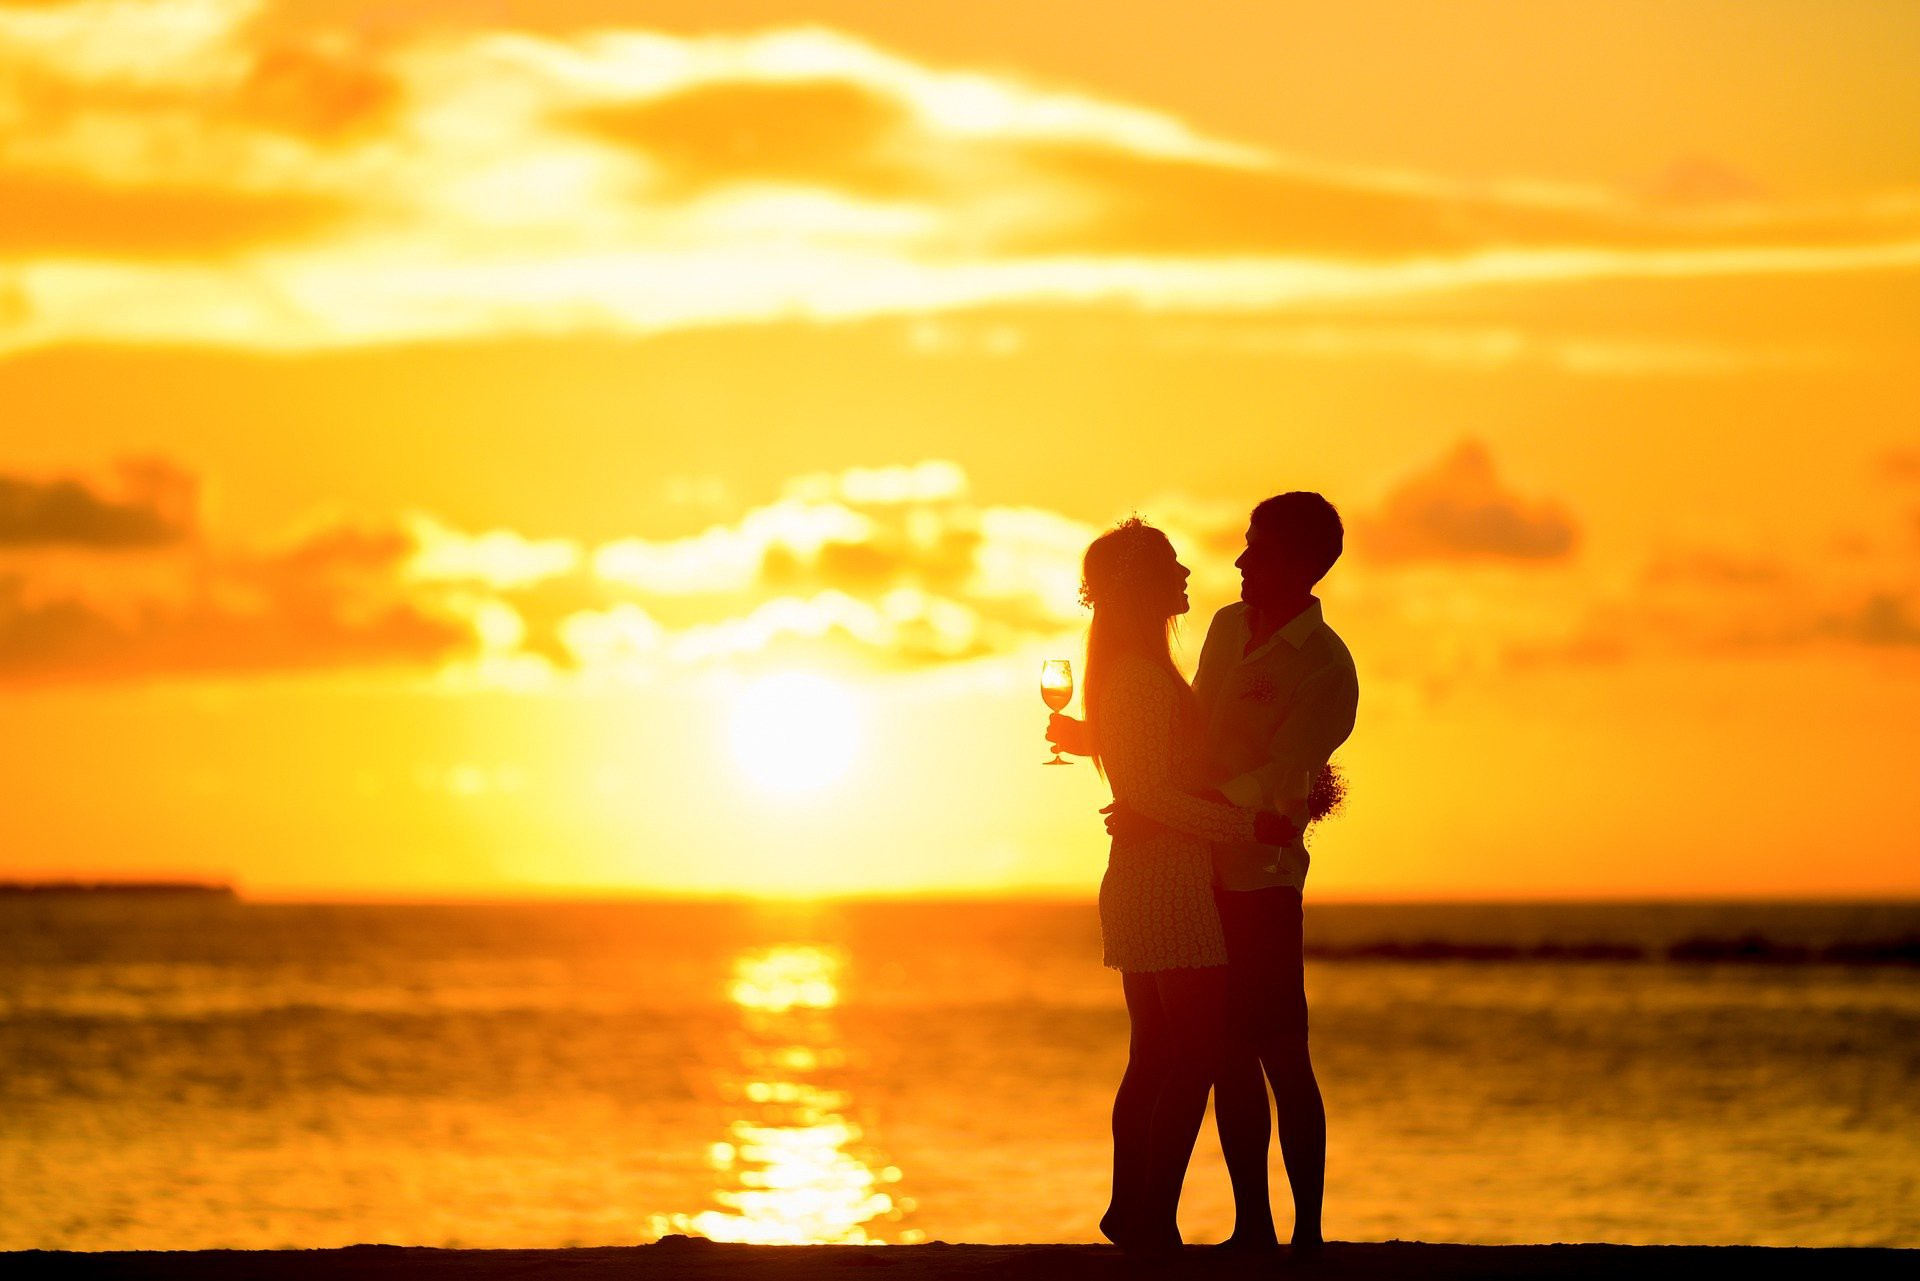 Couple on the beach at sunset with arms wrapped around each other celebrating the intensity of love they feel for each other.